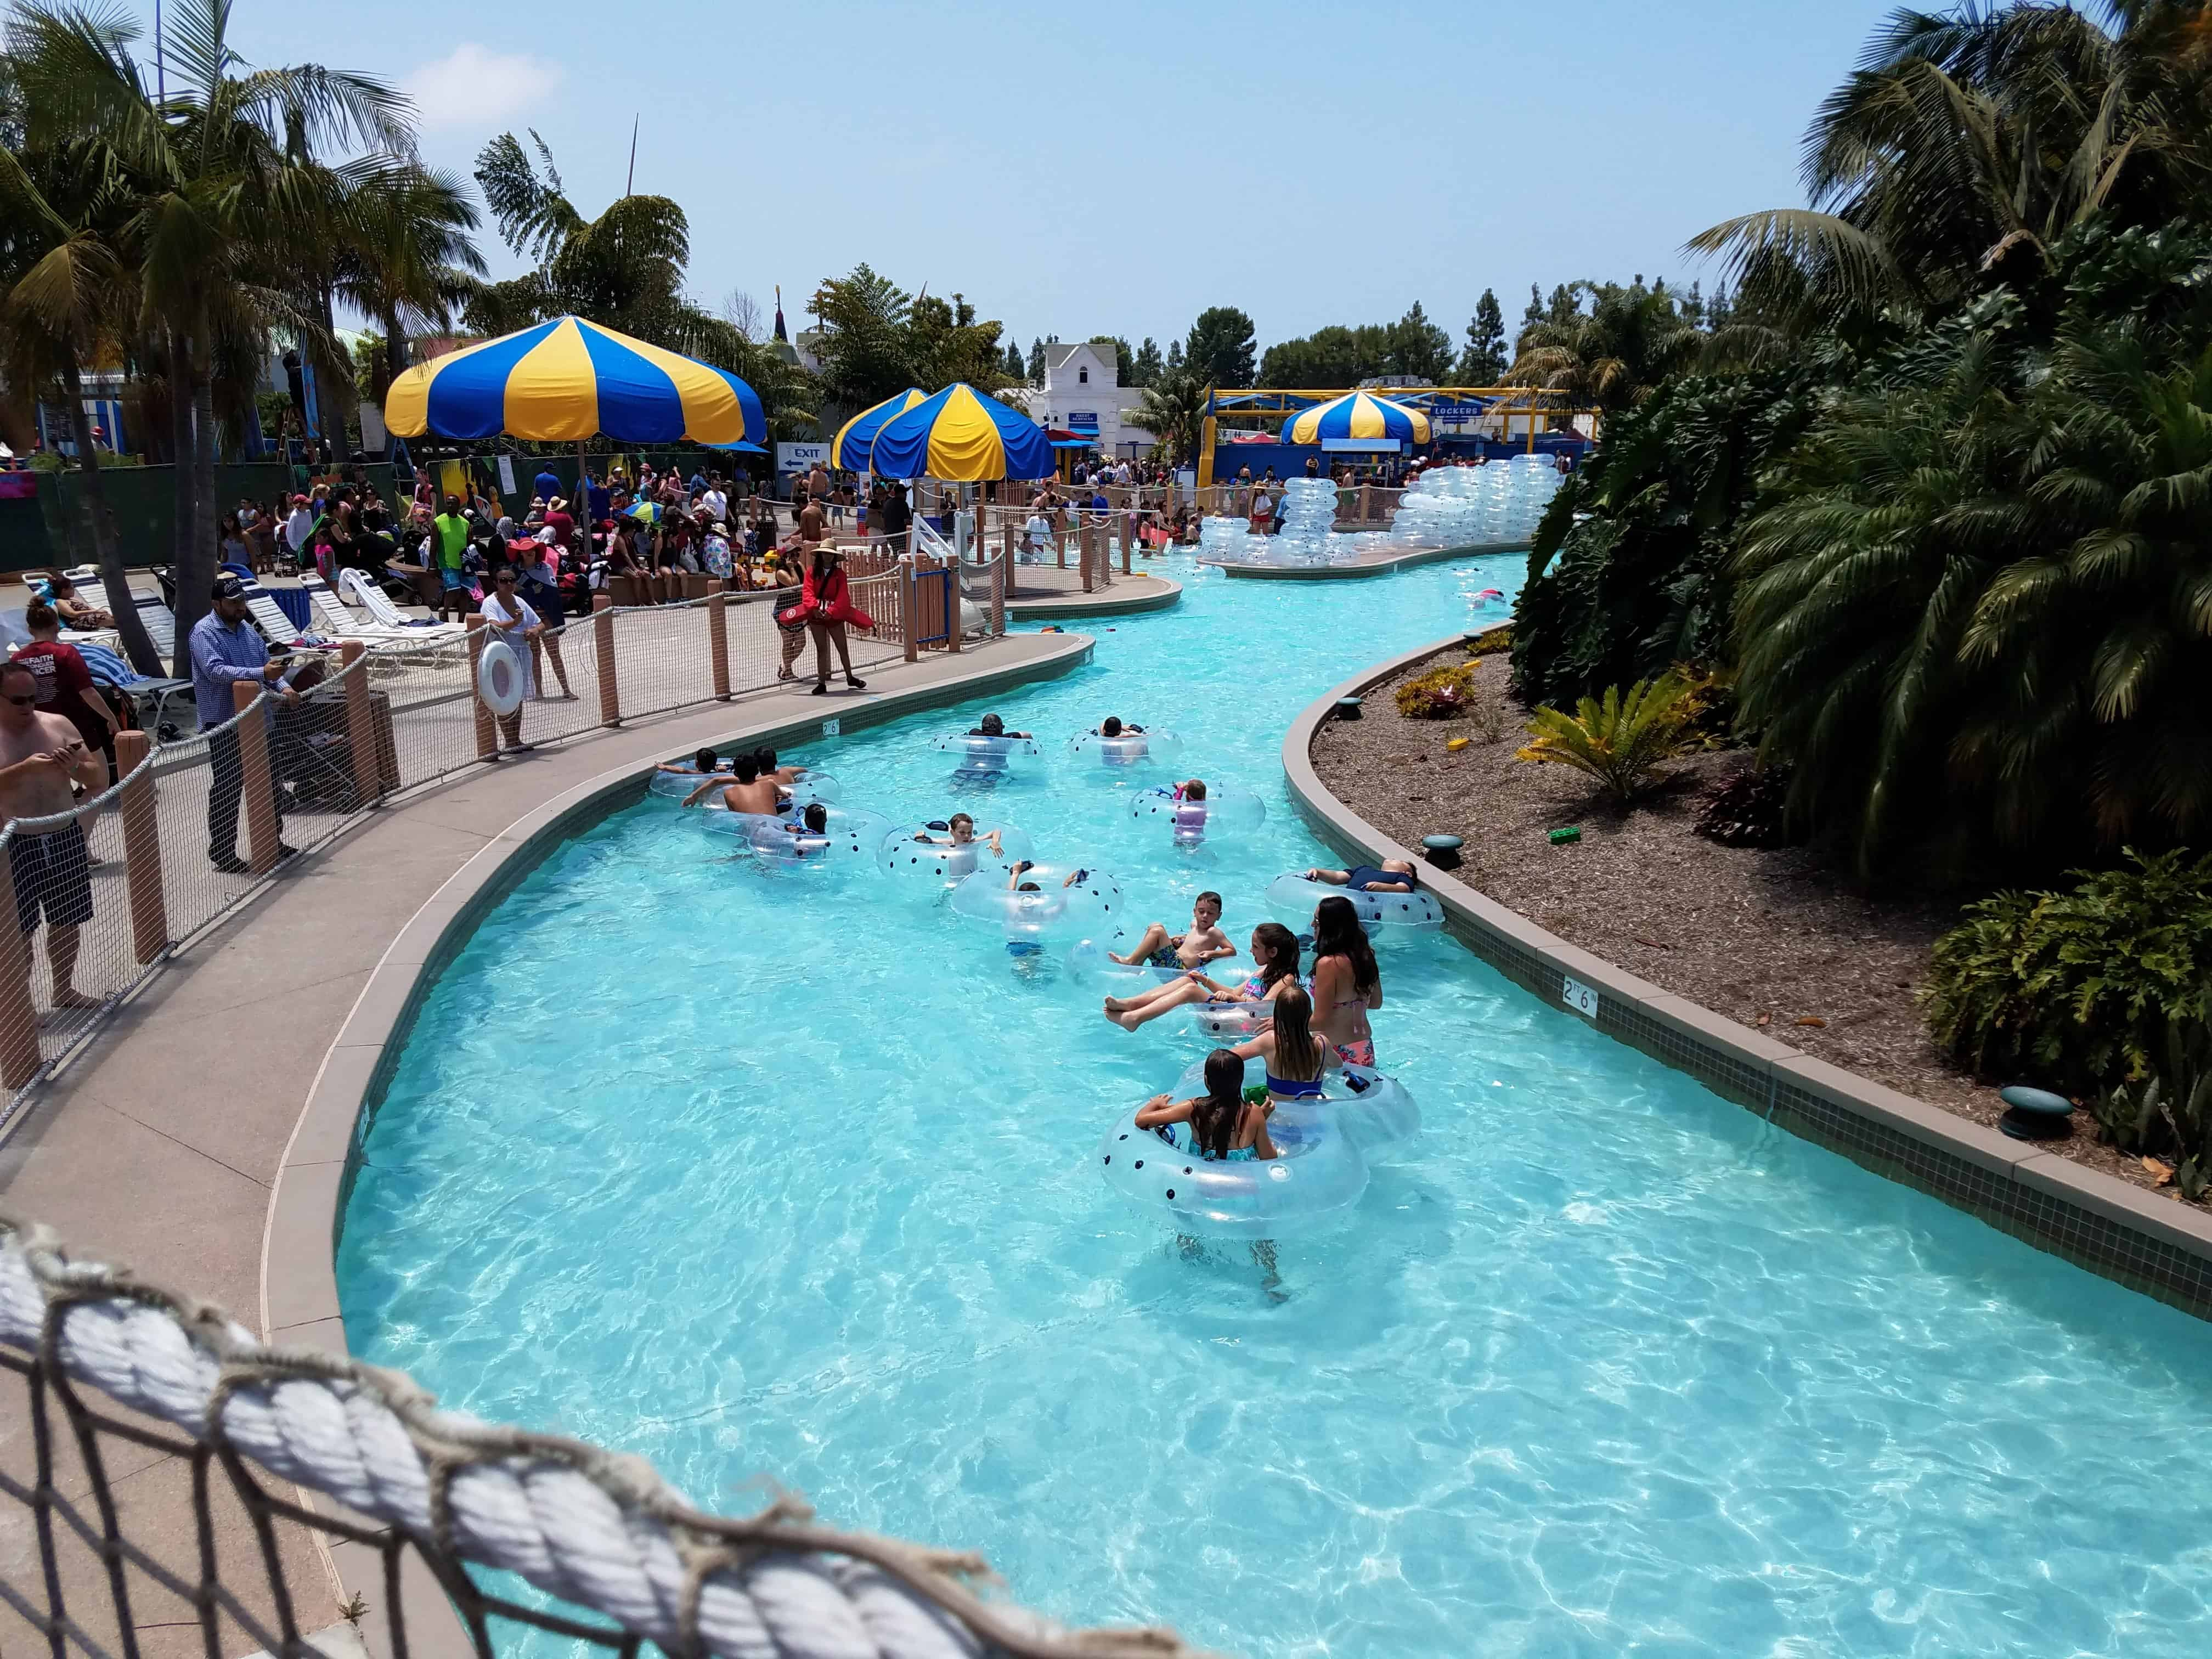 Things To Know Before Visiting The Legoland California